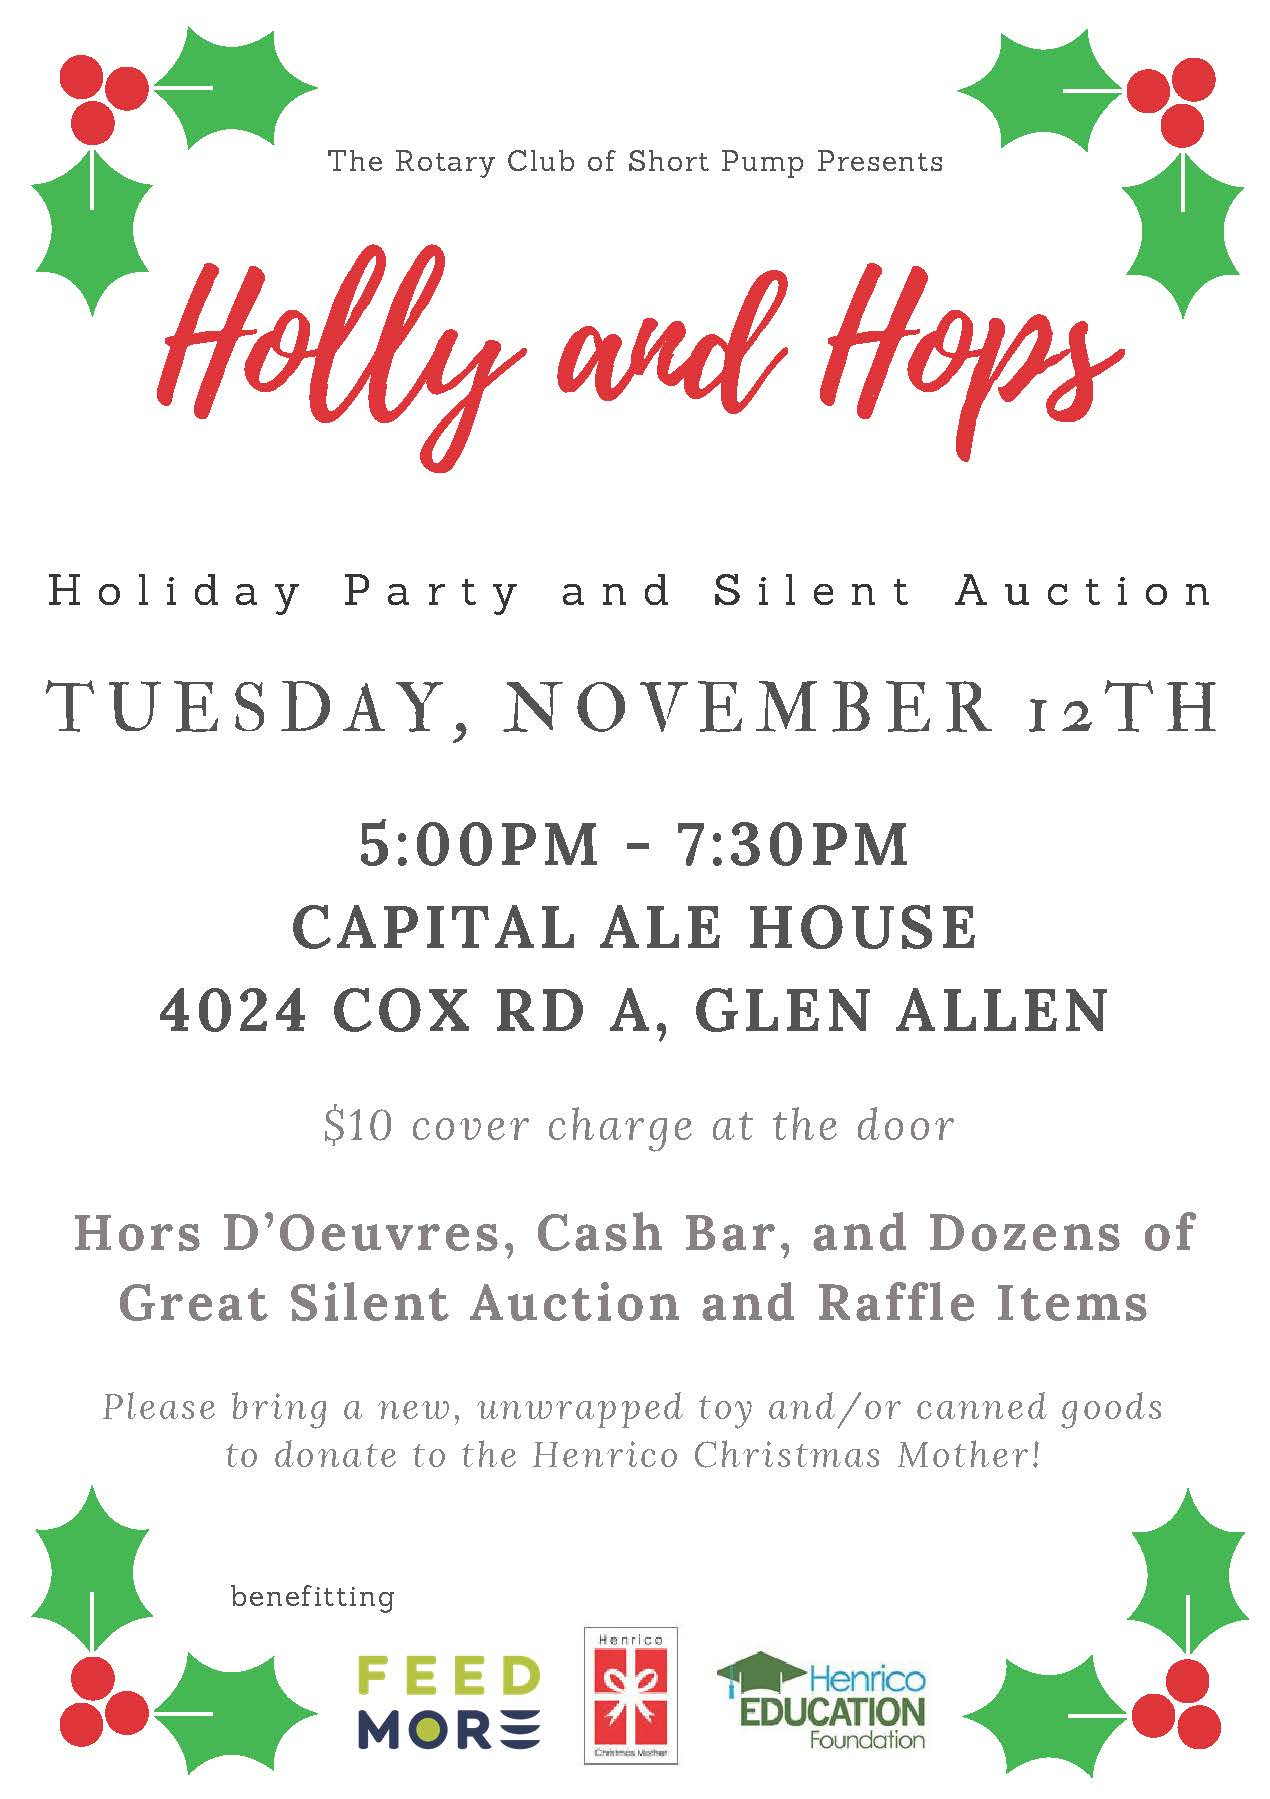 Rotary Club of Short Pump Holly and Hops Flyer 2019